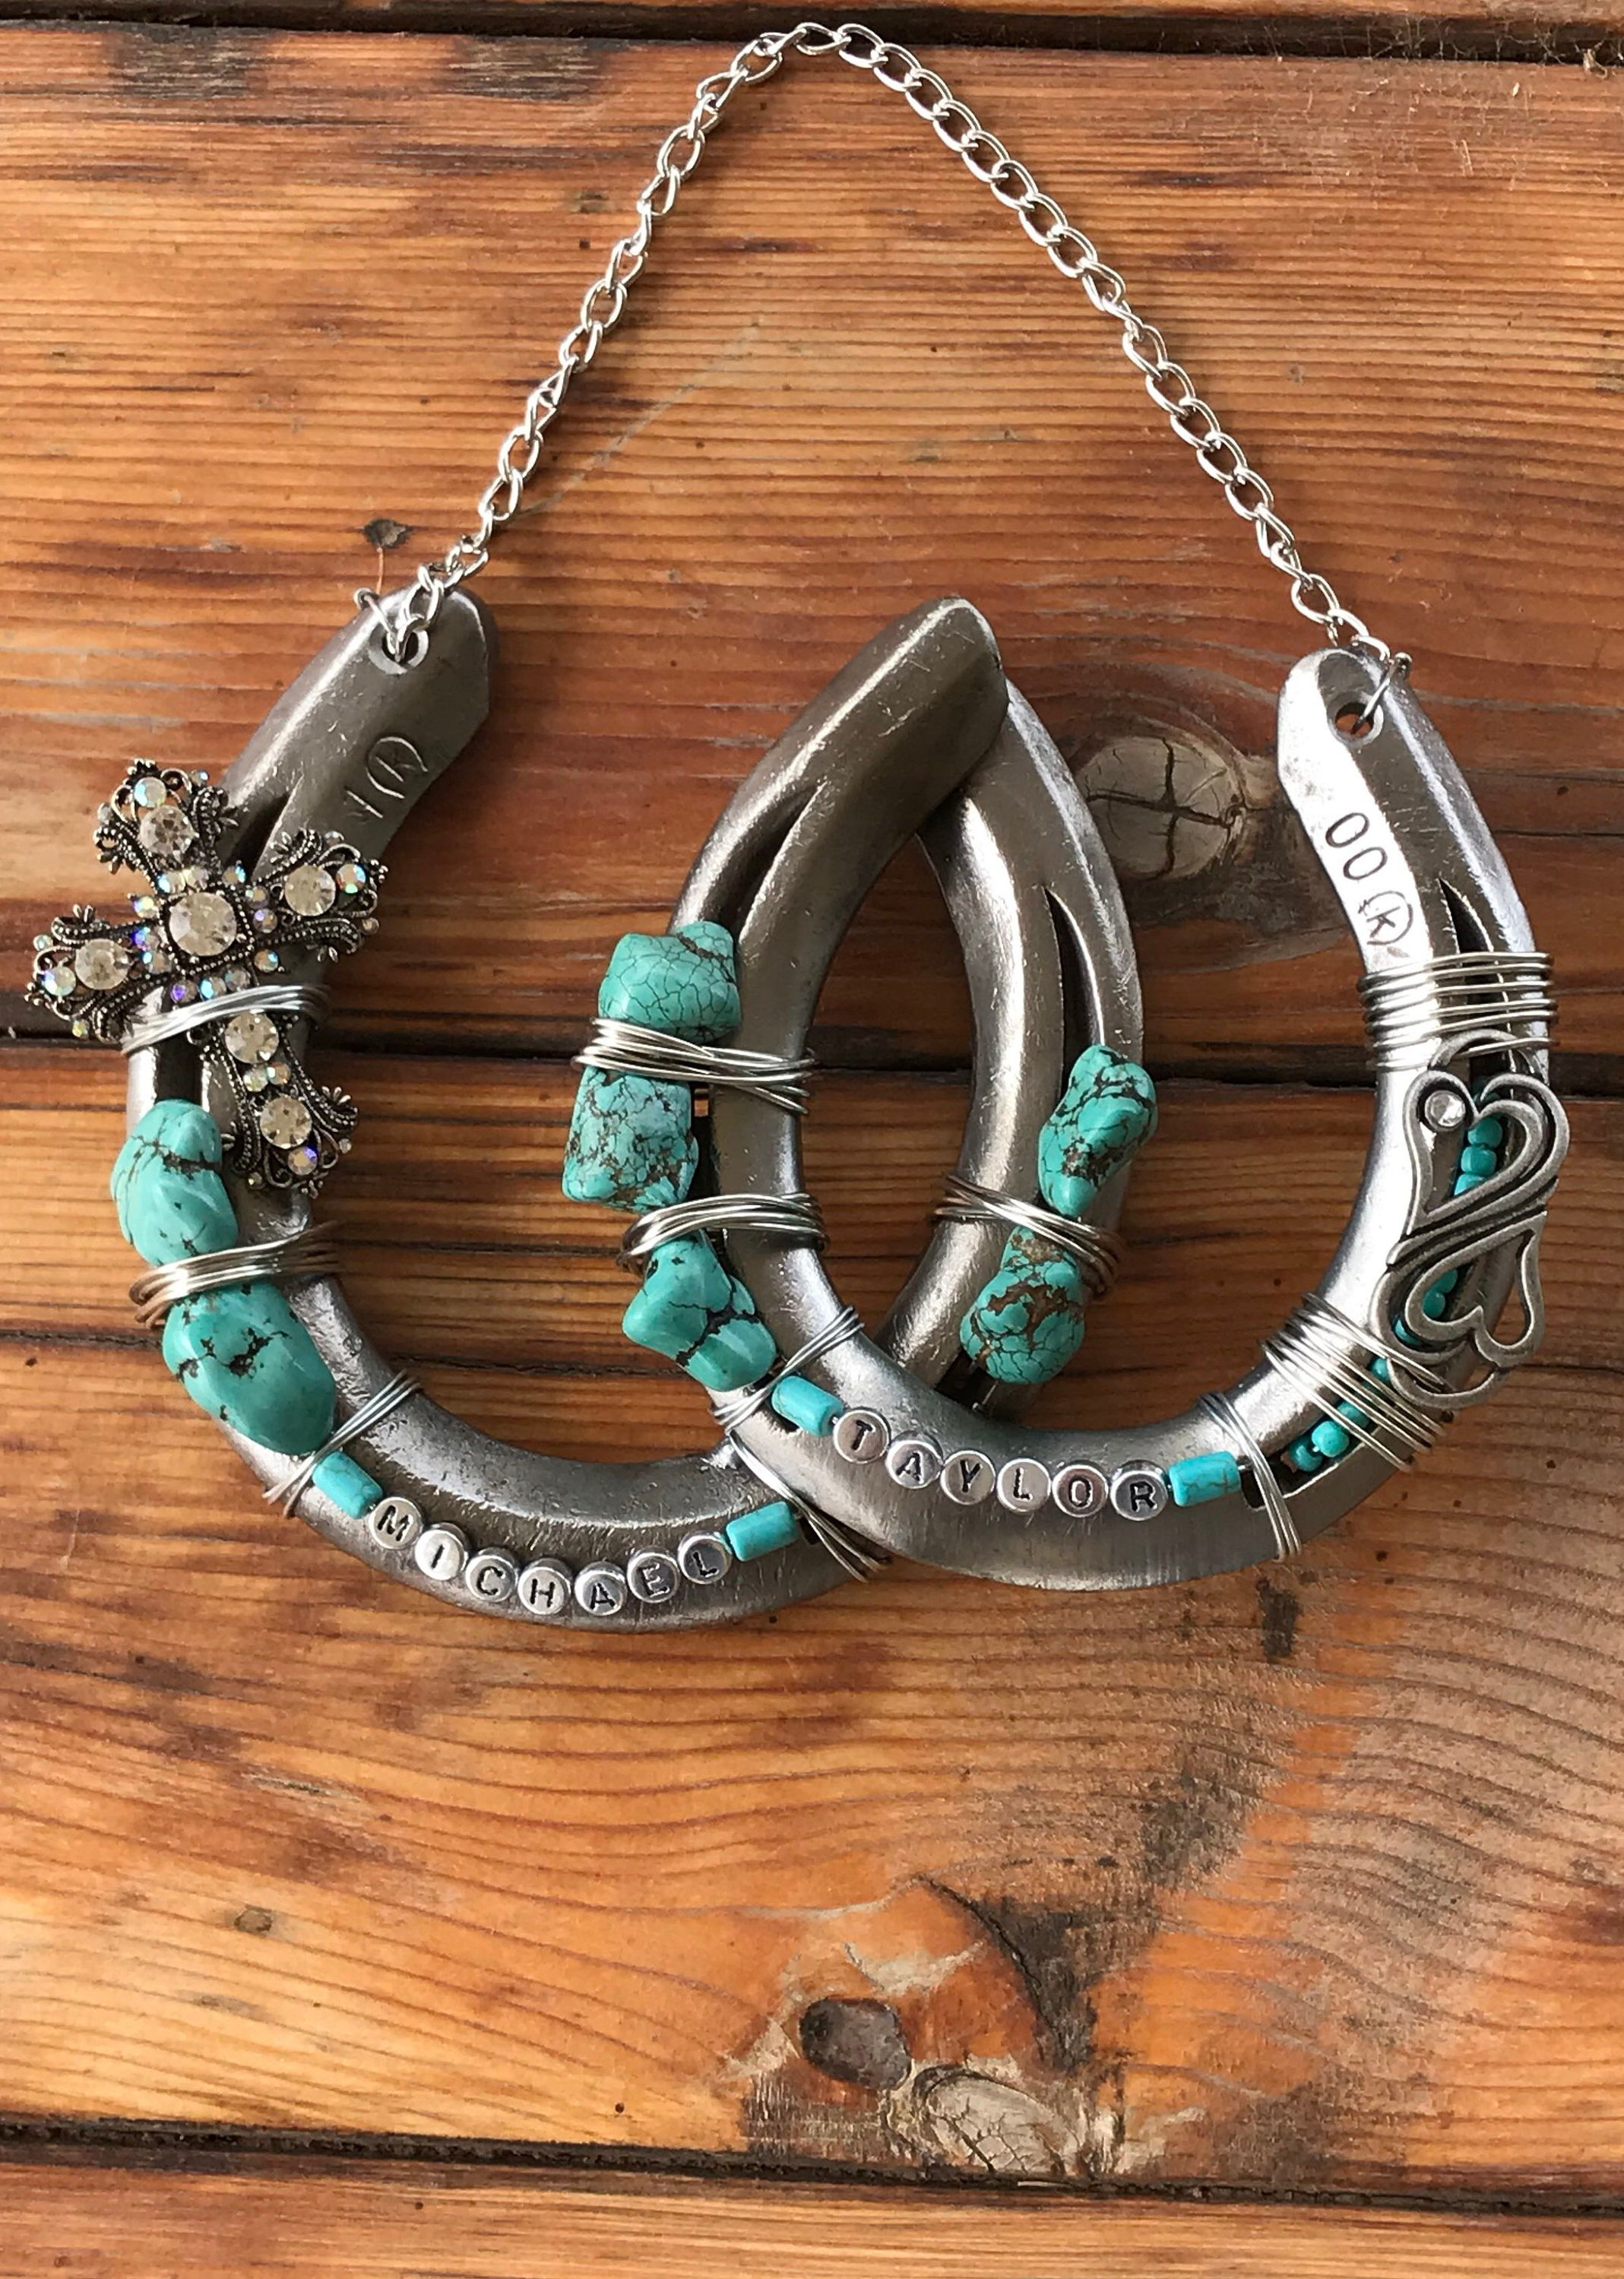 Wedding Gift Decorated Horseshoe Gift For Couple Good Luck